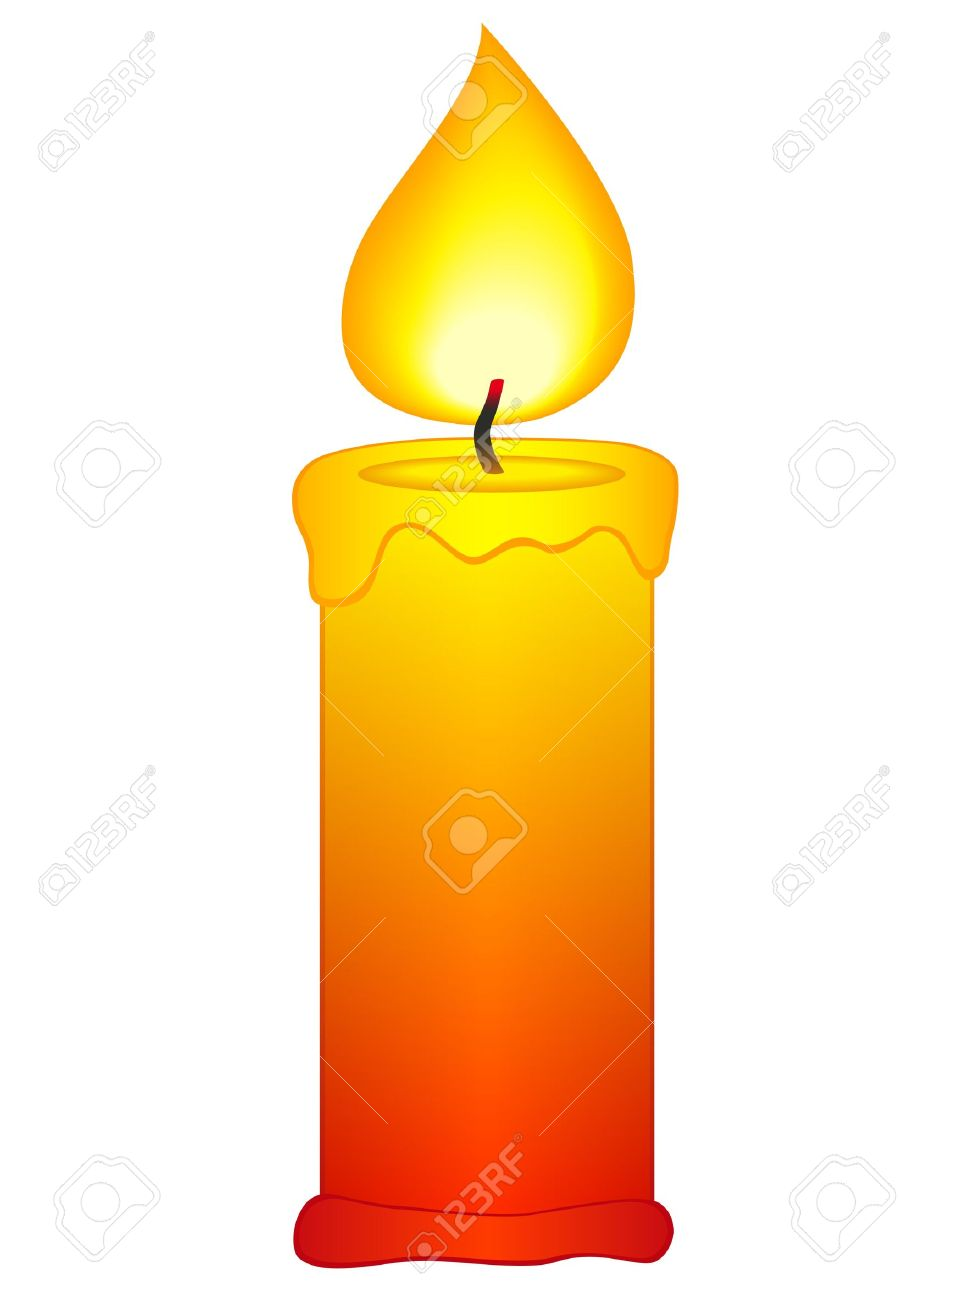 975x1300 Melting Candle Clipart Lit Candle